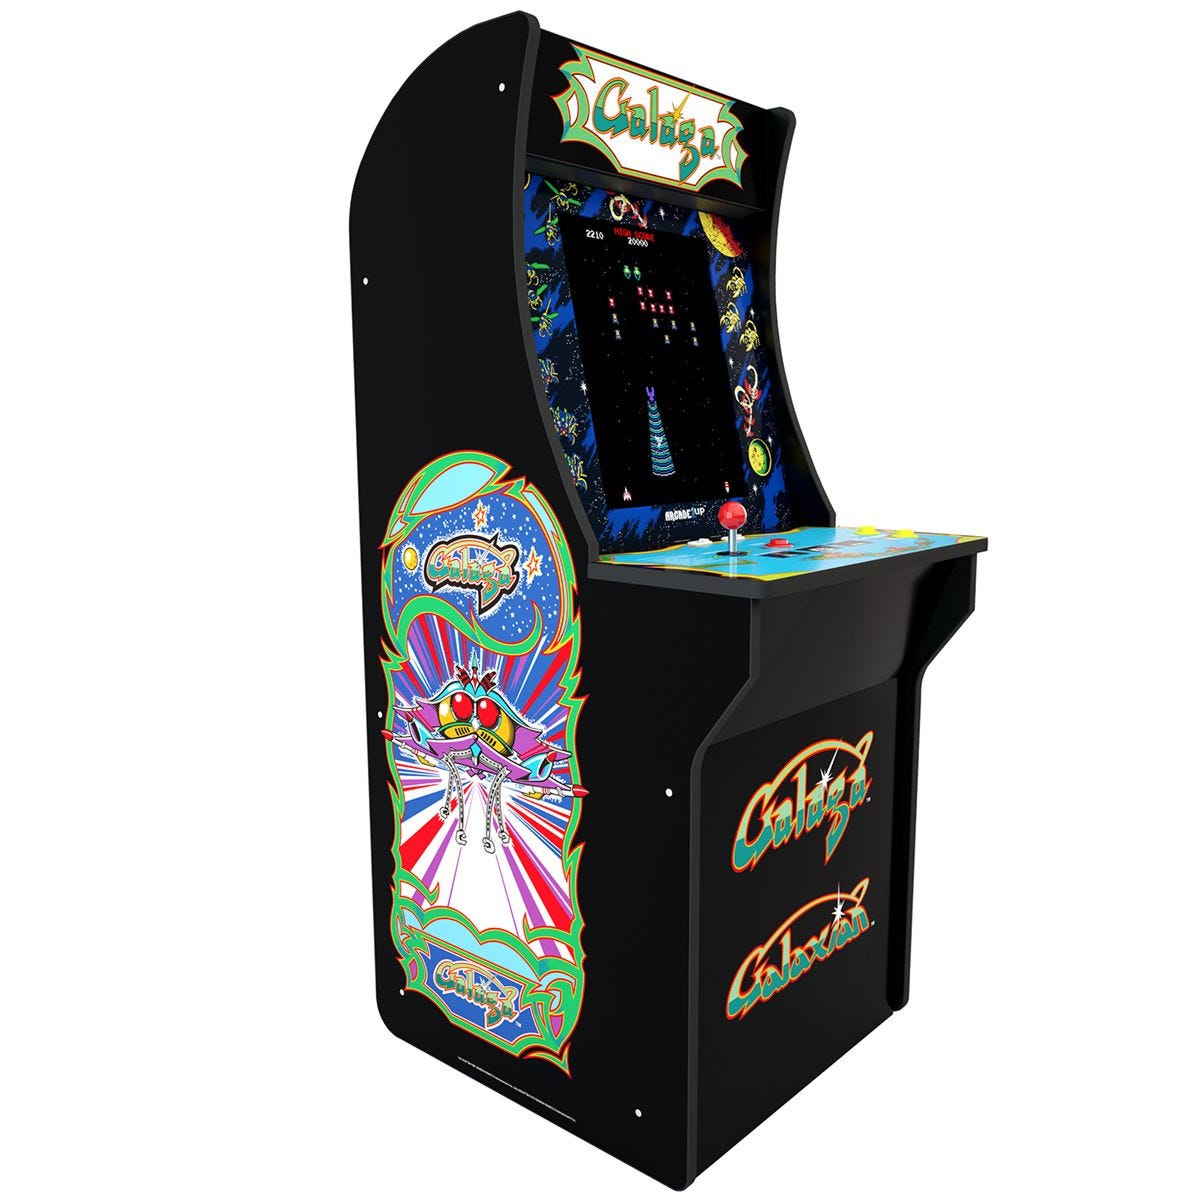 Arcade1Up Galaga Arcade Cabinet with Galaxian